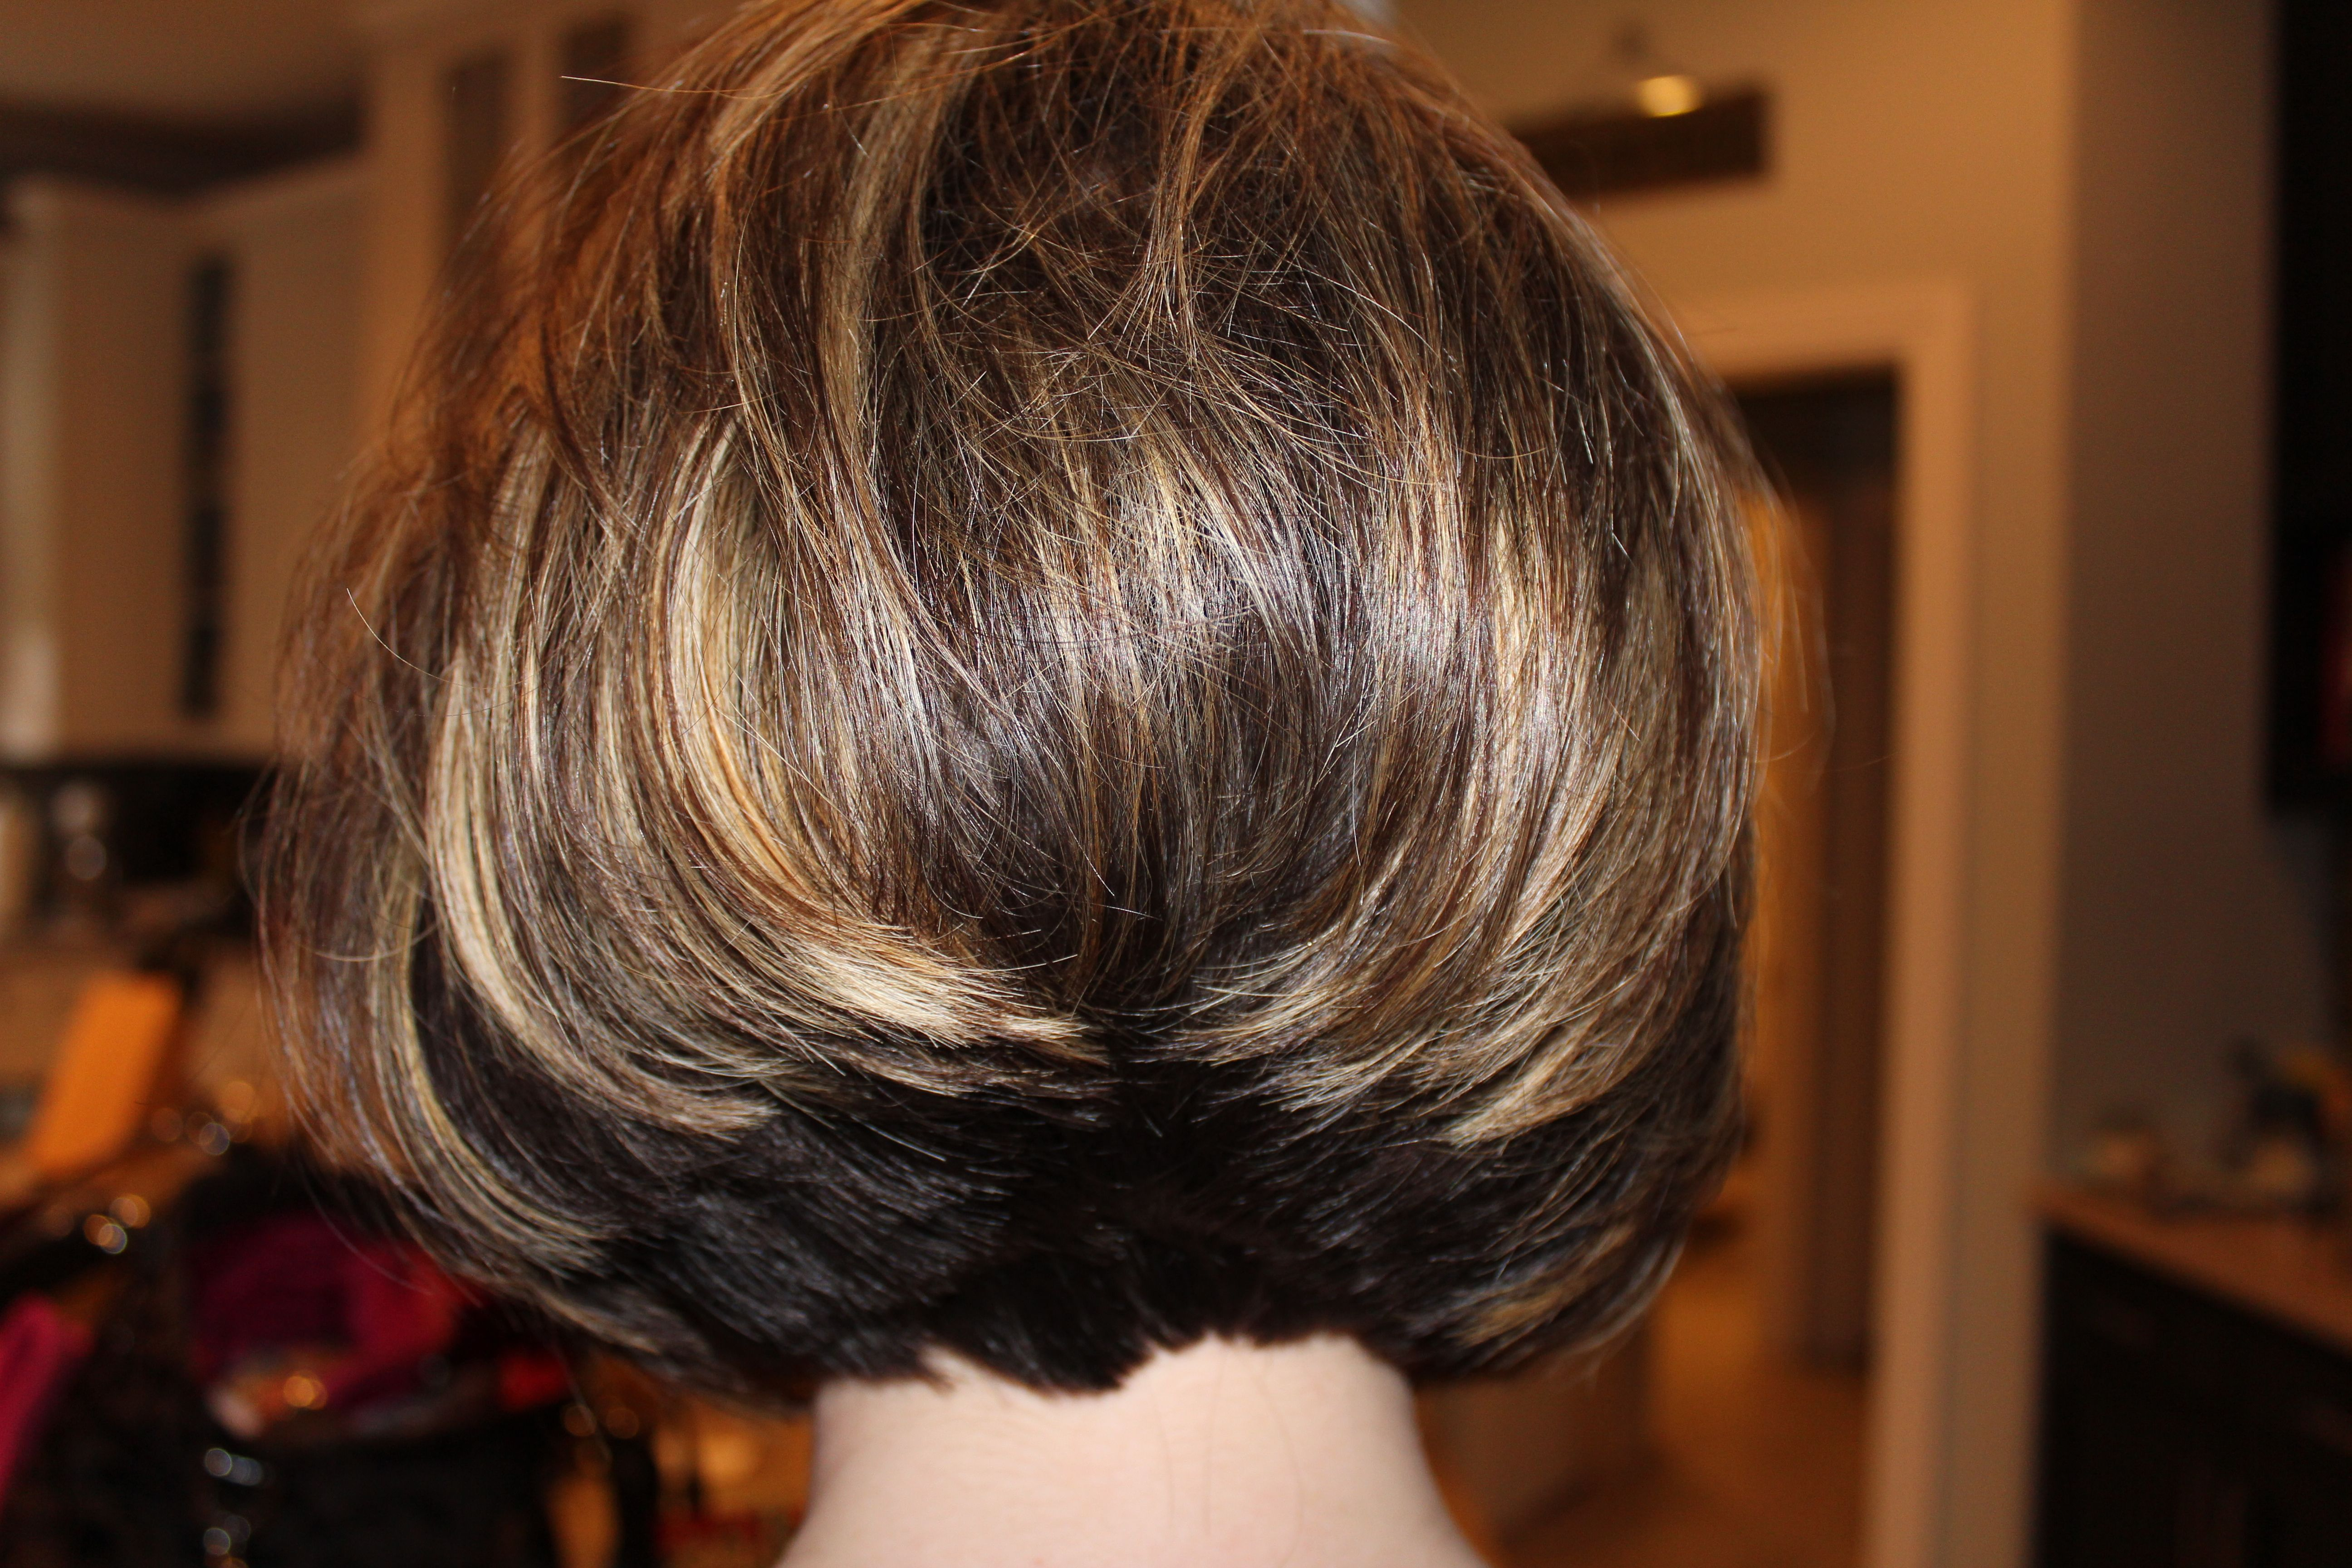 Stupendous 1000 Images About Hairstyles On Pinterest Stacked Bob Hairstyles For Men Maxibearus